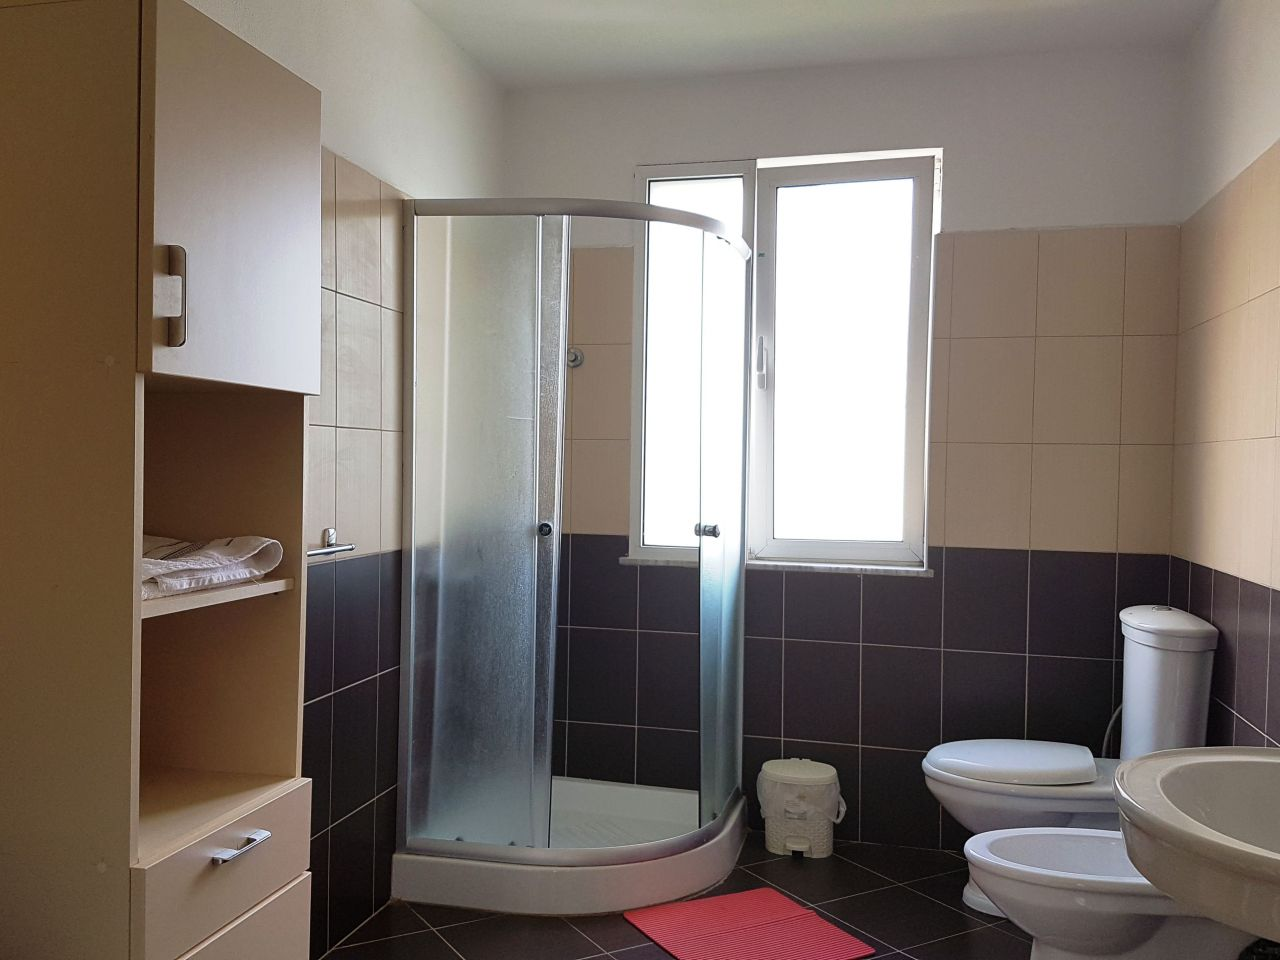 Albania Real Estate for Rent in Tirana. Spacious Apartment for Rent